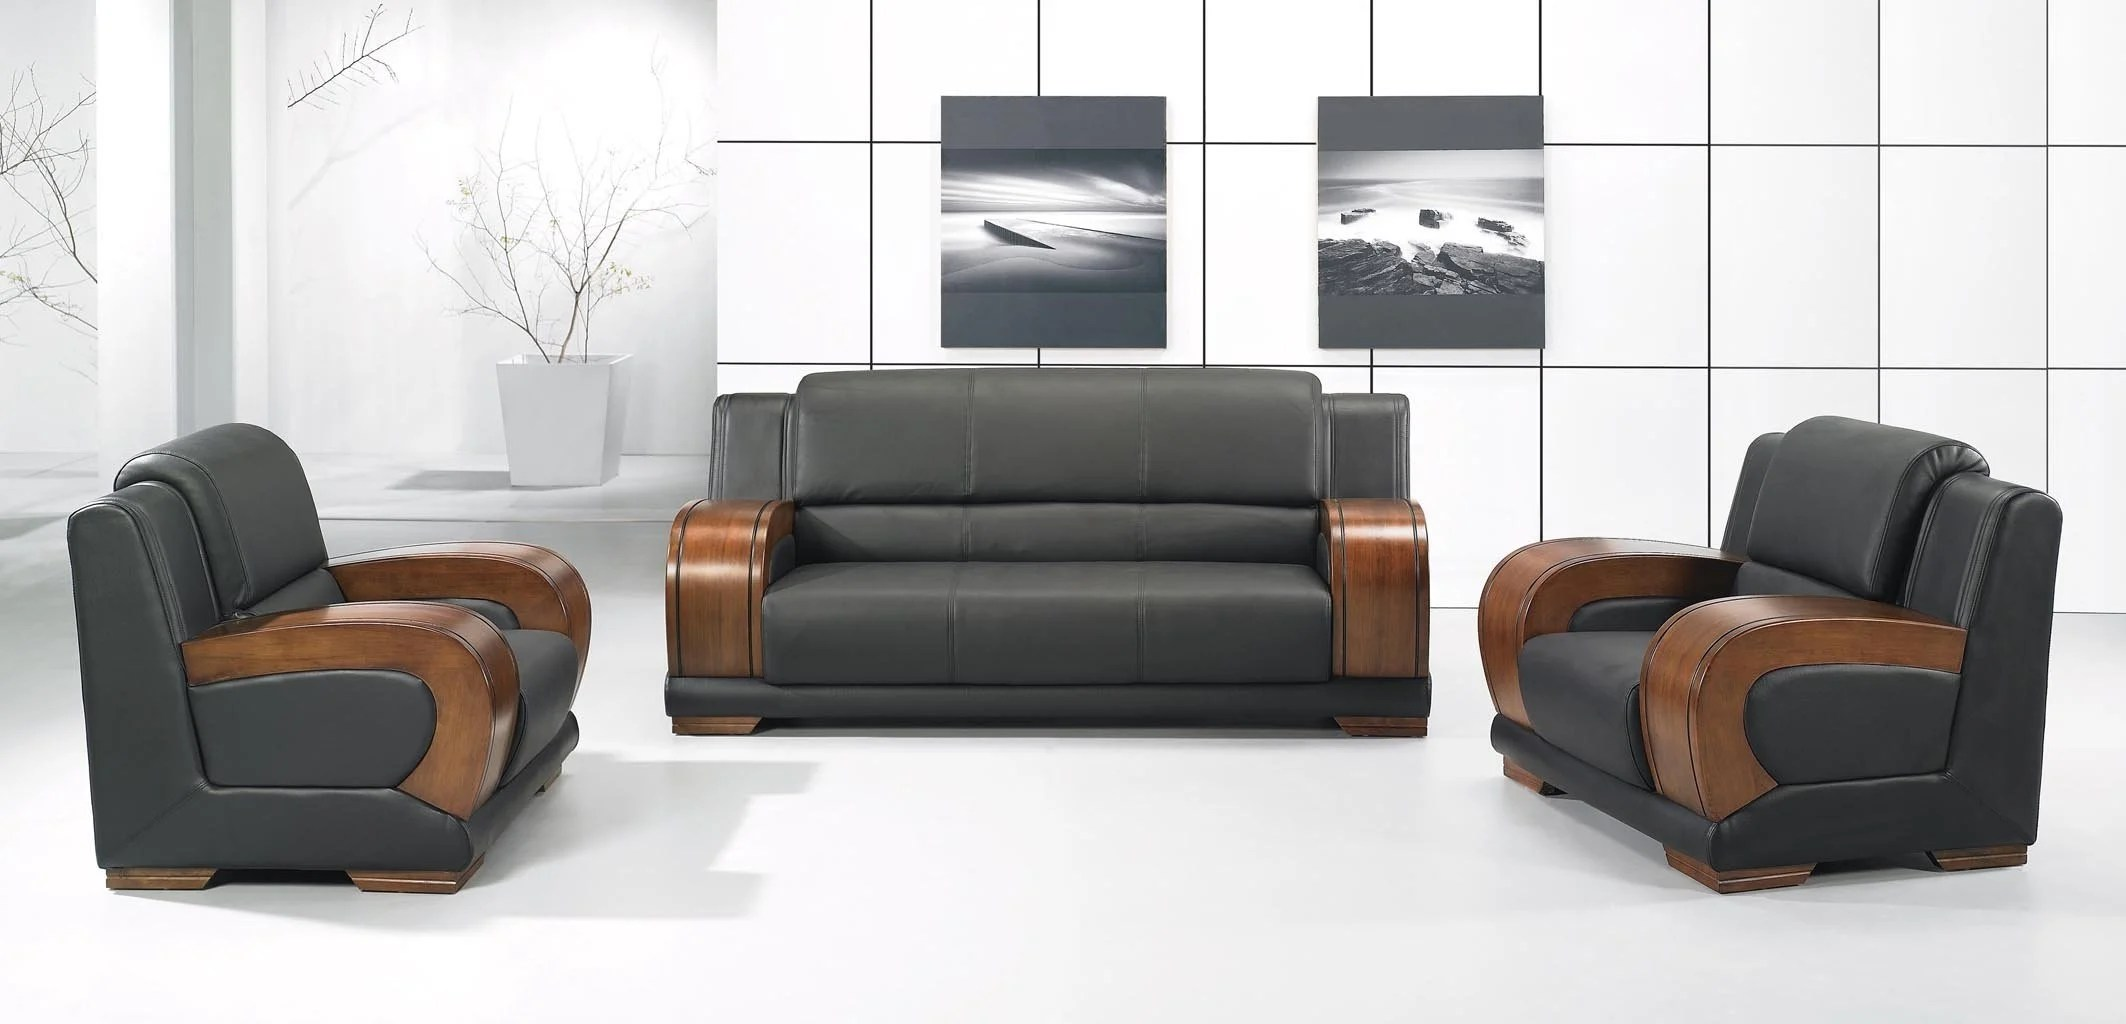 steam clean leather sofa curved back sectional moores cleaning service carpet and upholstery